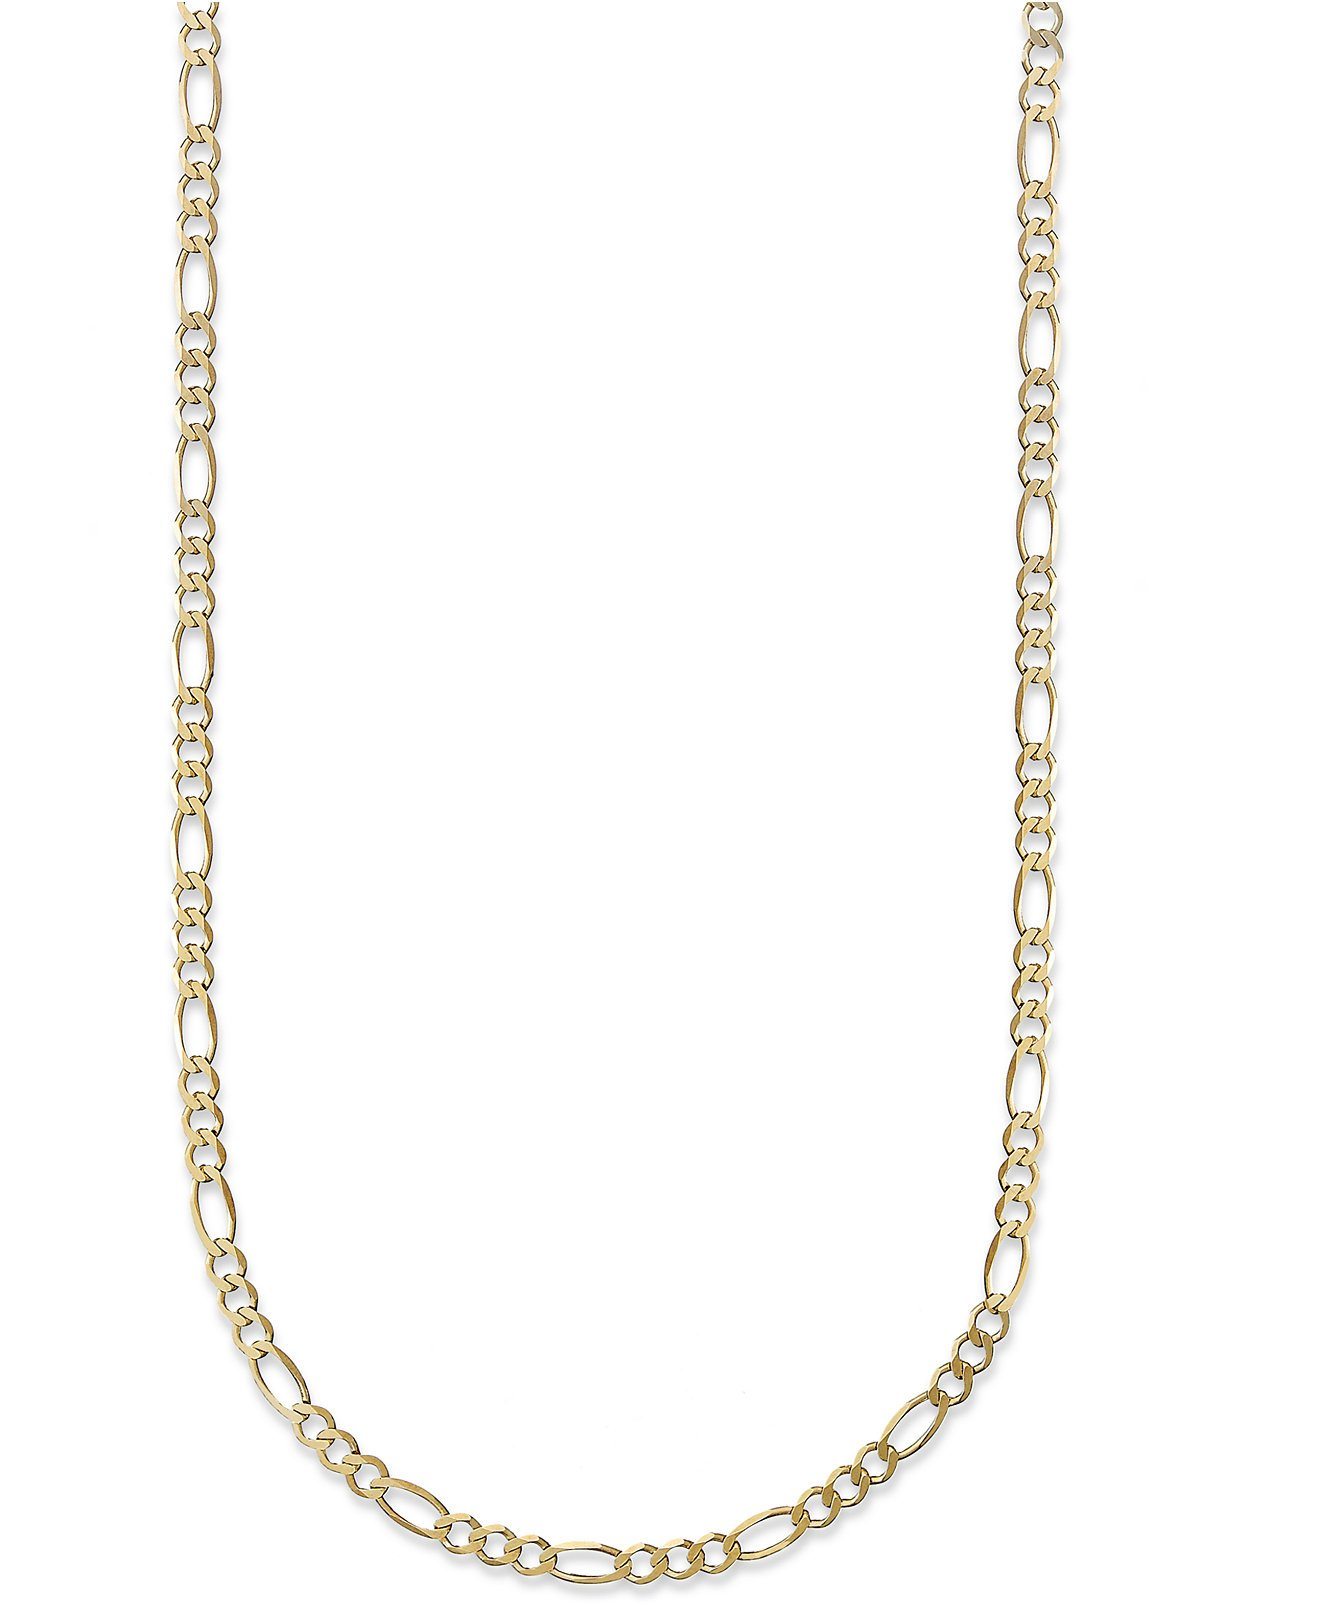 18K Yellow Gold 3.5mm Figaro 3+1 Link Chain Necklace- Multiple lengths available-20